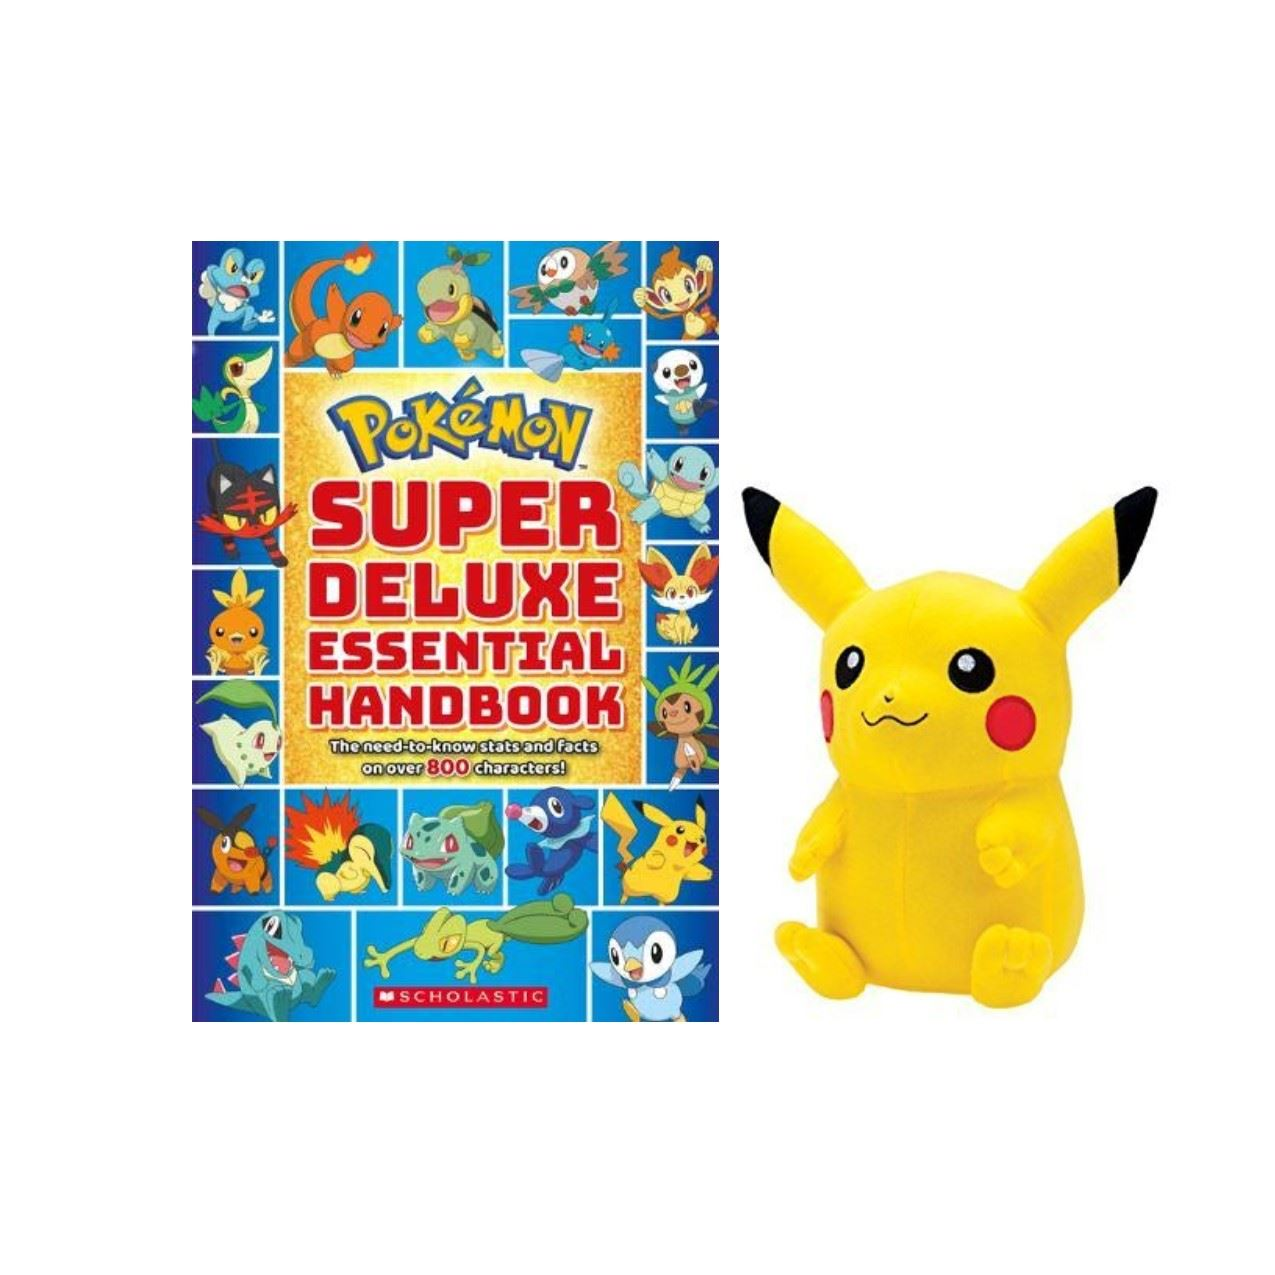 Pikachu and book